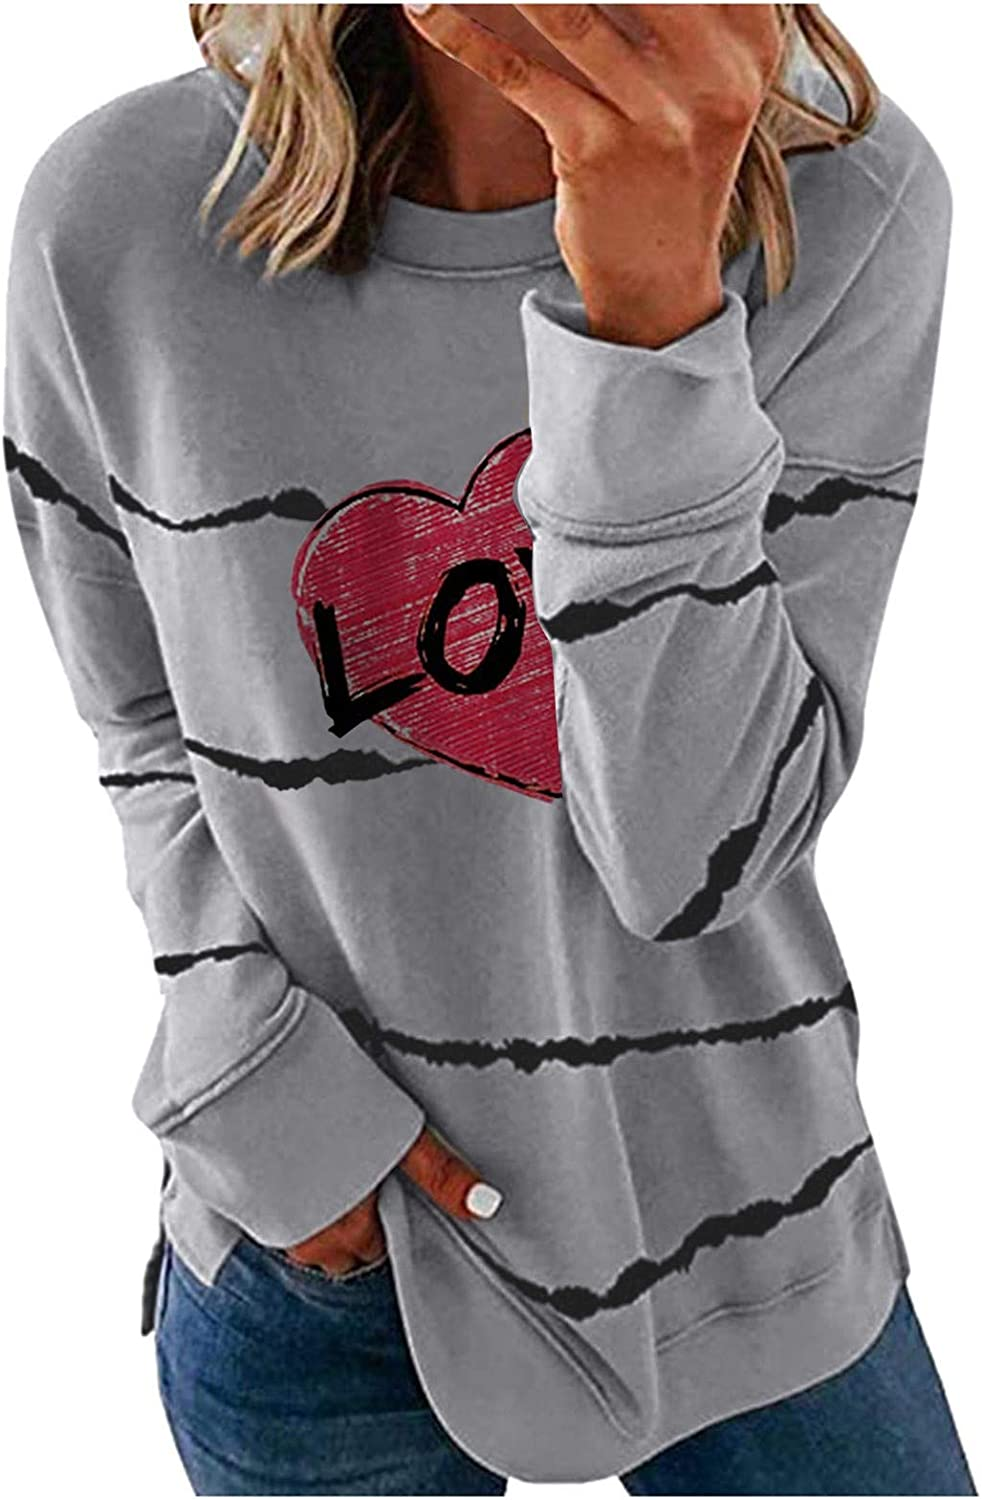 Oversized Sweatshirt for Women, Crew Neck Long Sleeve Hearts Print Casual Blouse Pullover Plus Size Tunic Tops